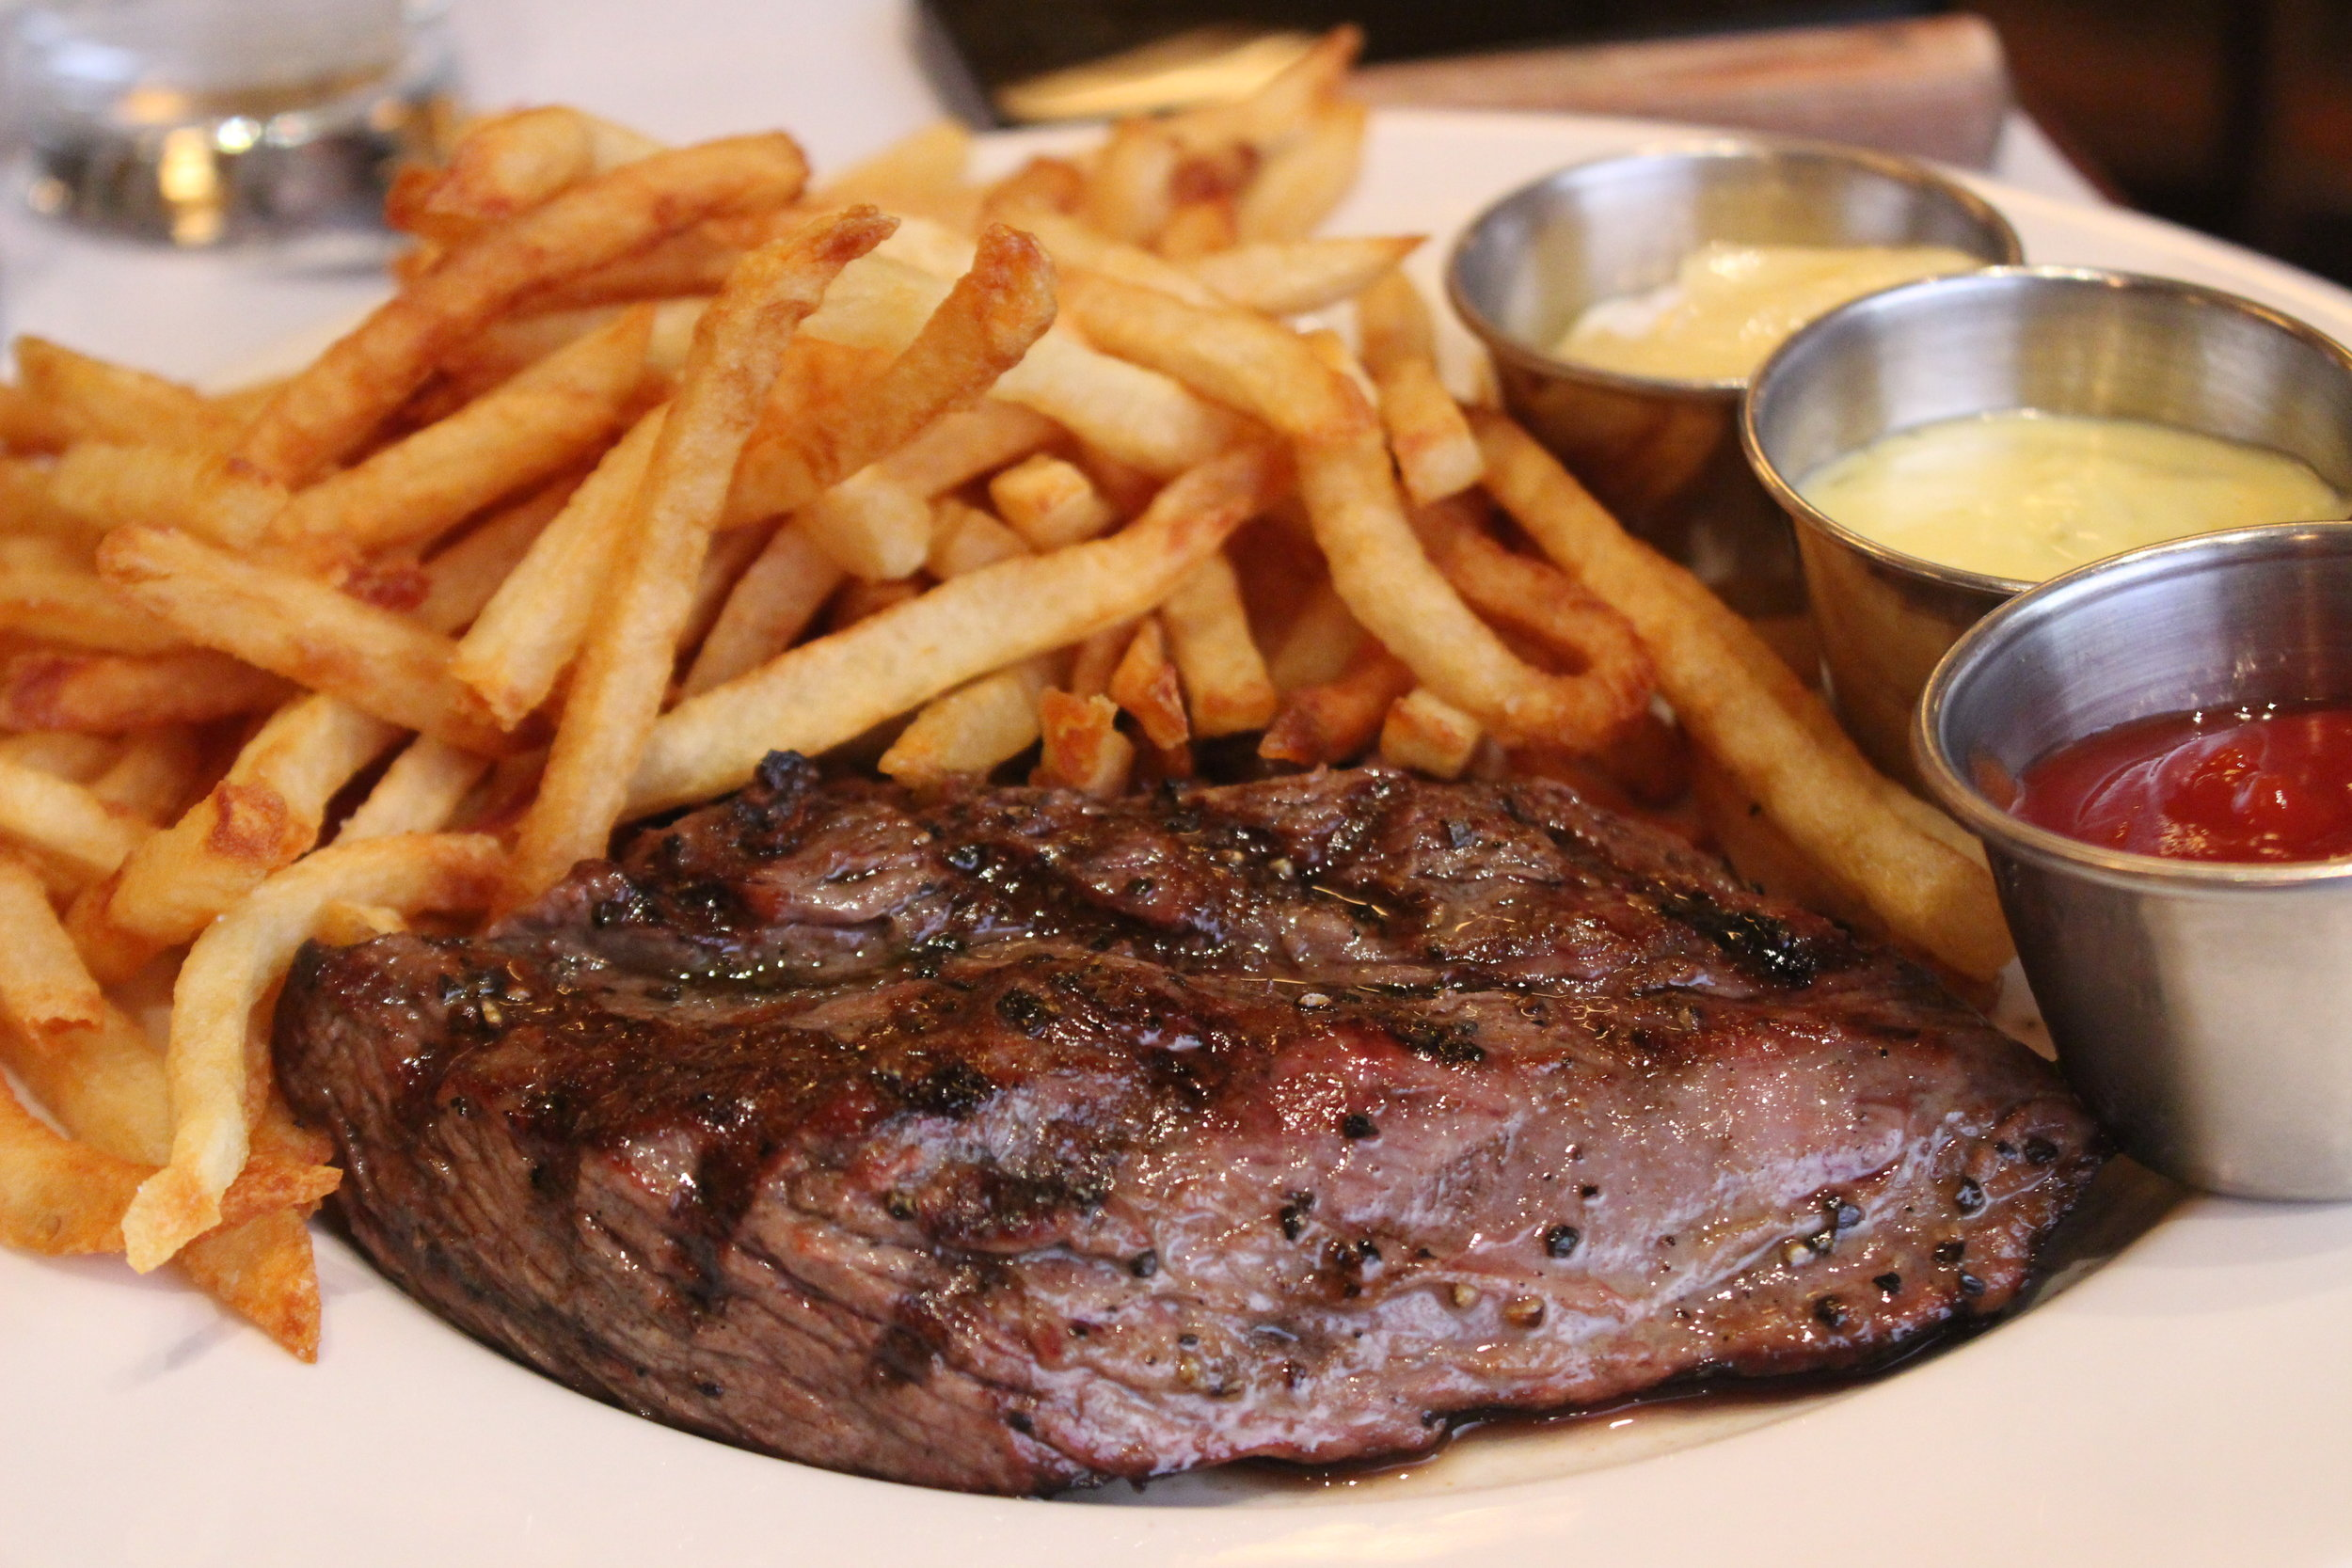 Steak Frites with Maître D' butter or Béarnaise sauce